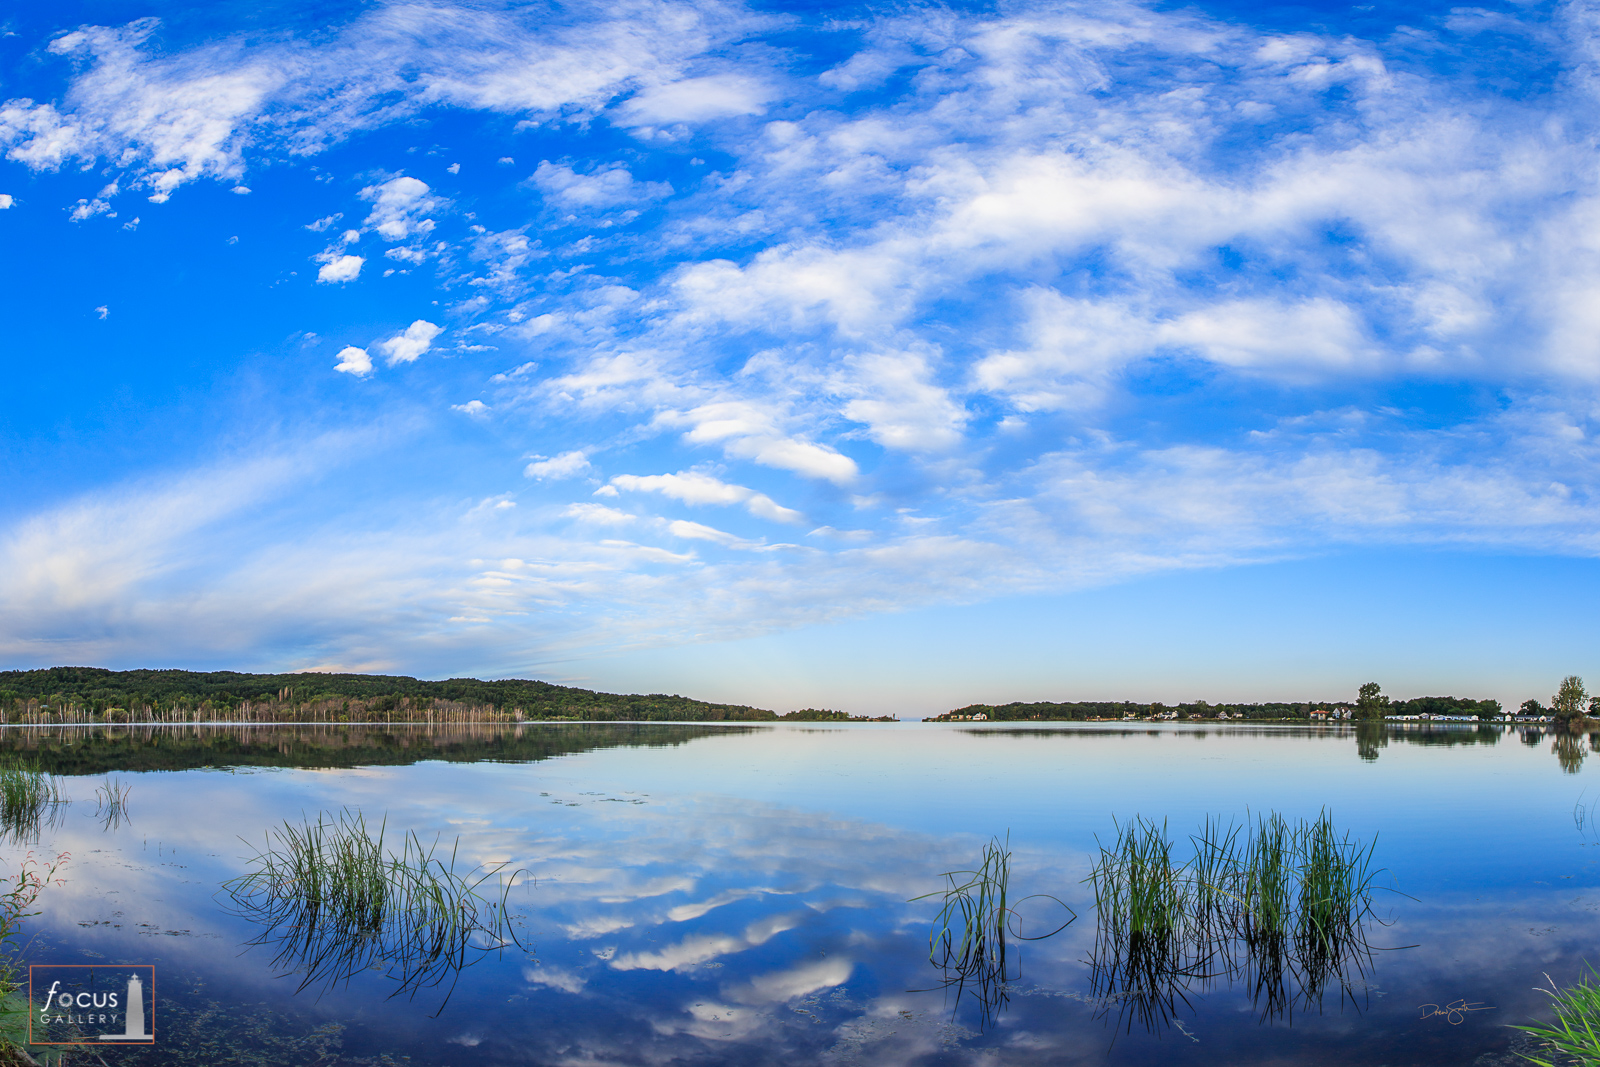 Blue sky and clouds reflected on Arcadia Lake, Arcadia, Michigan.